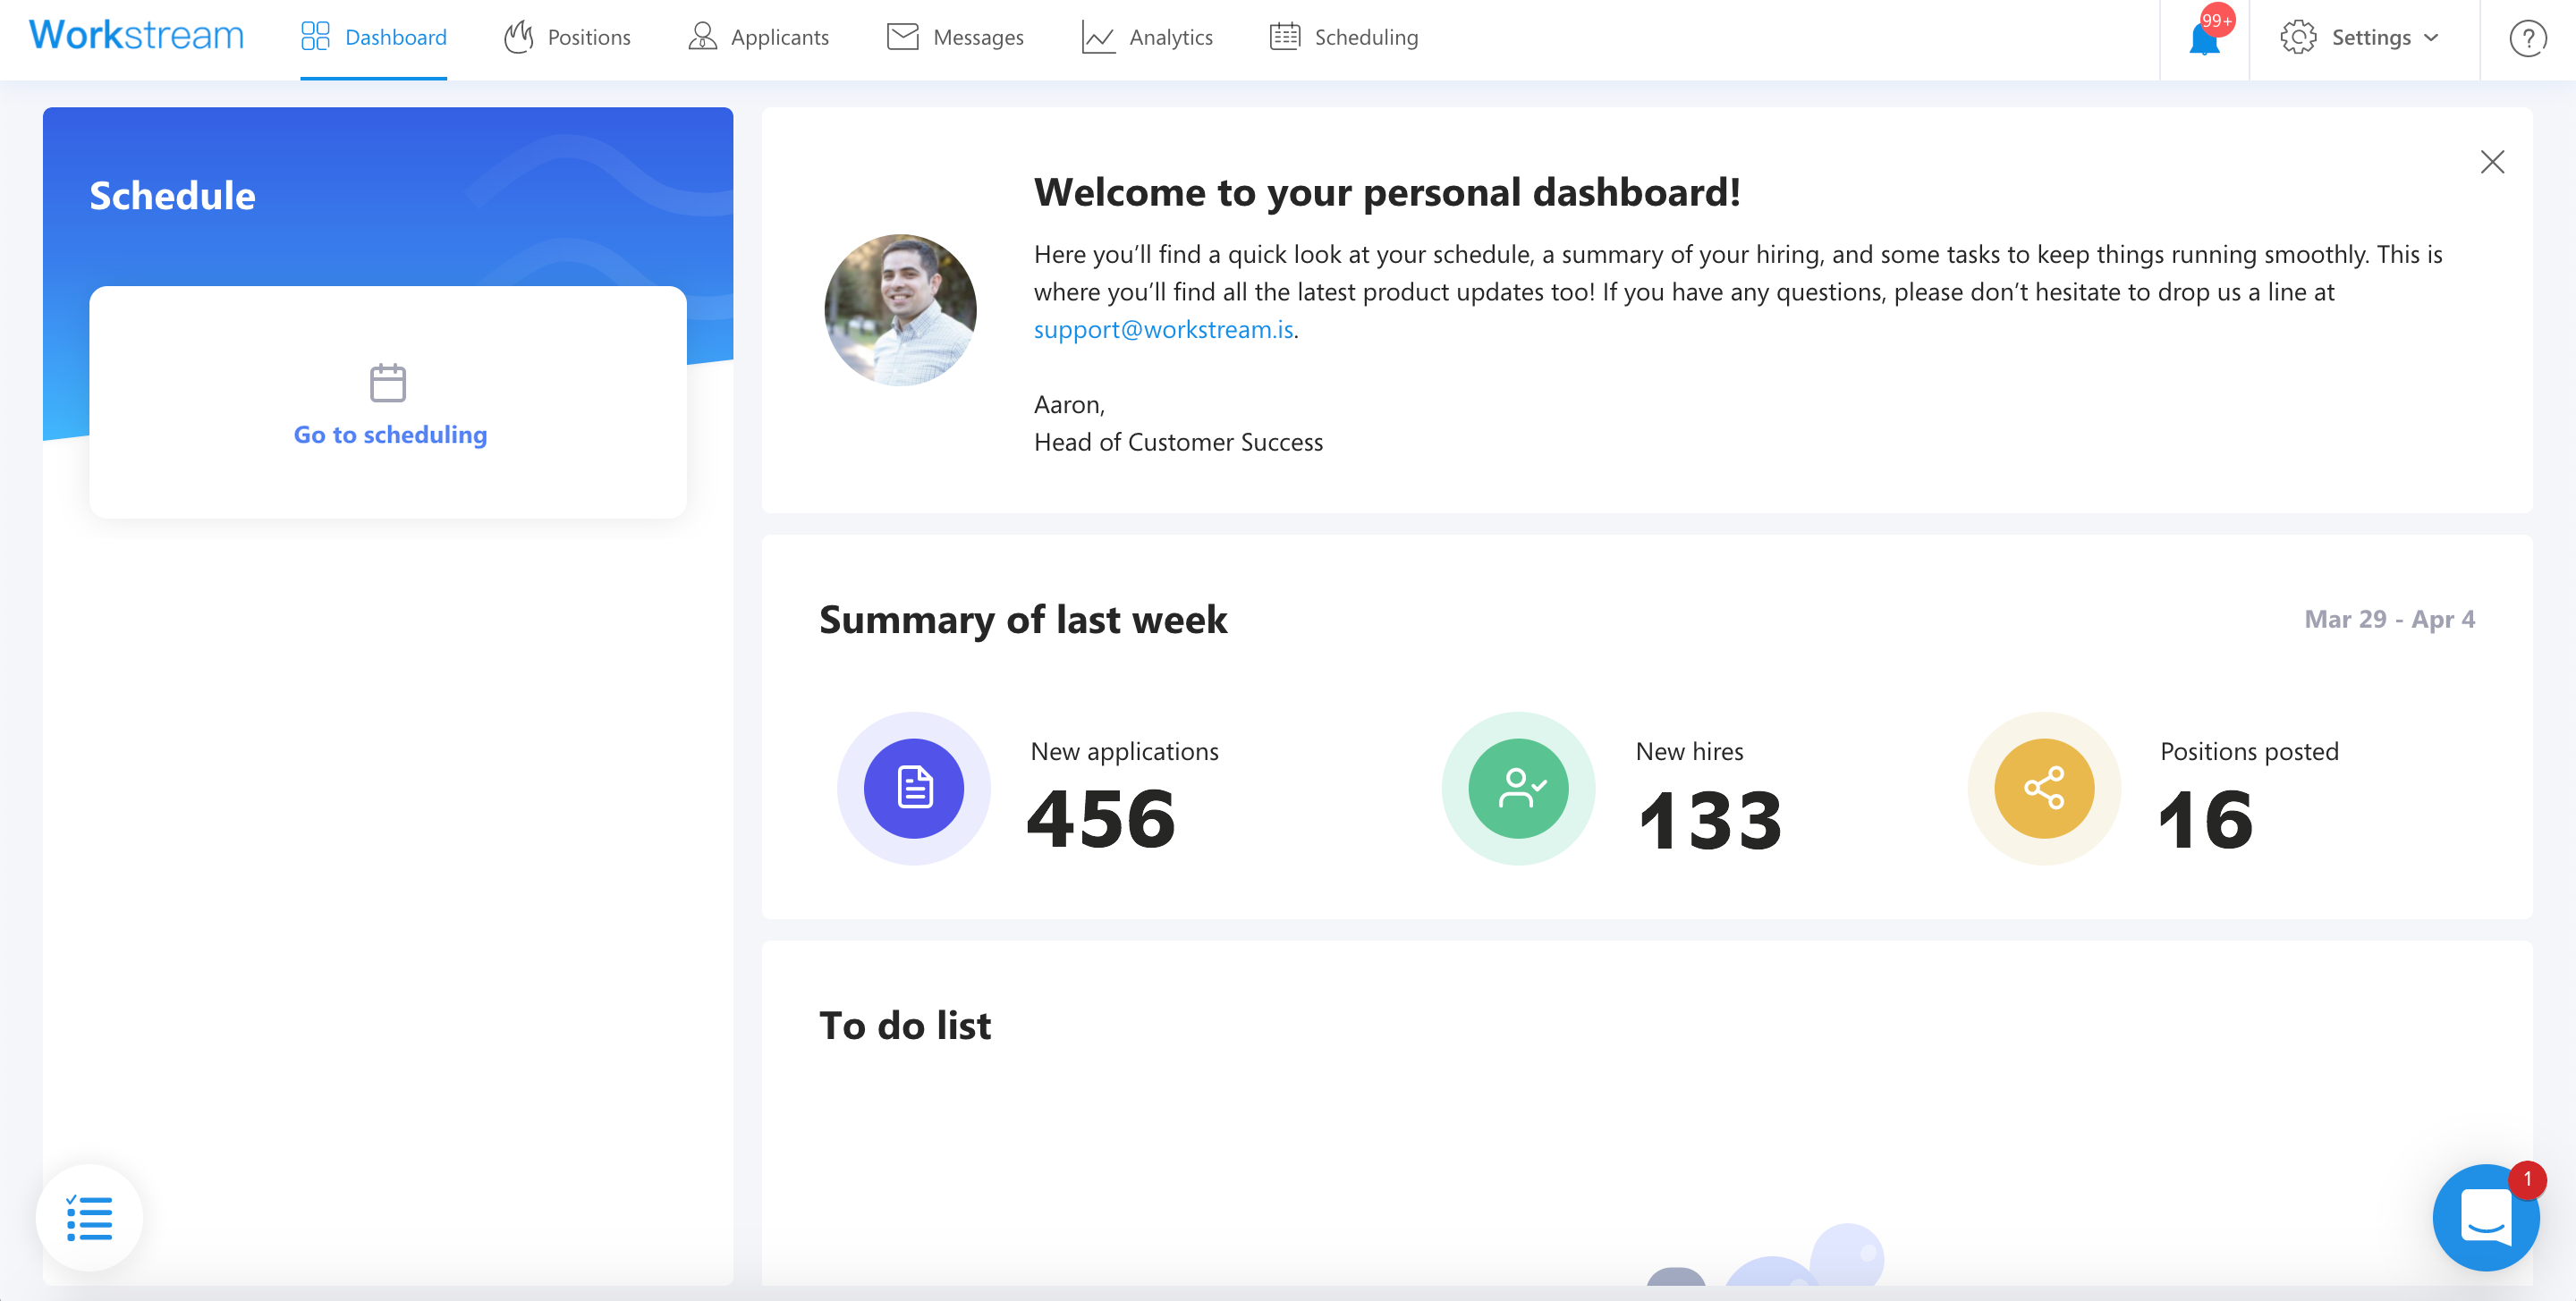 Deliverthat workstream dashboard